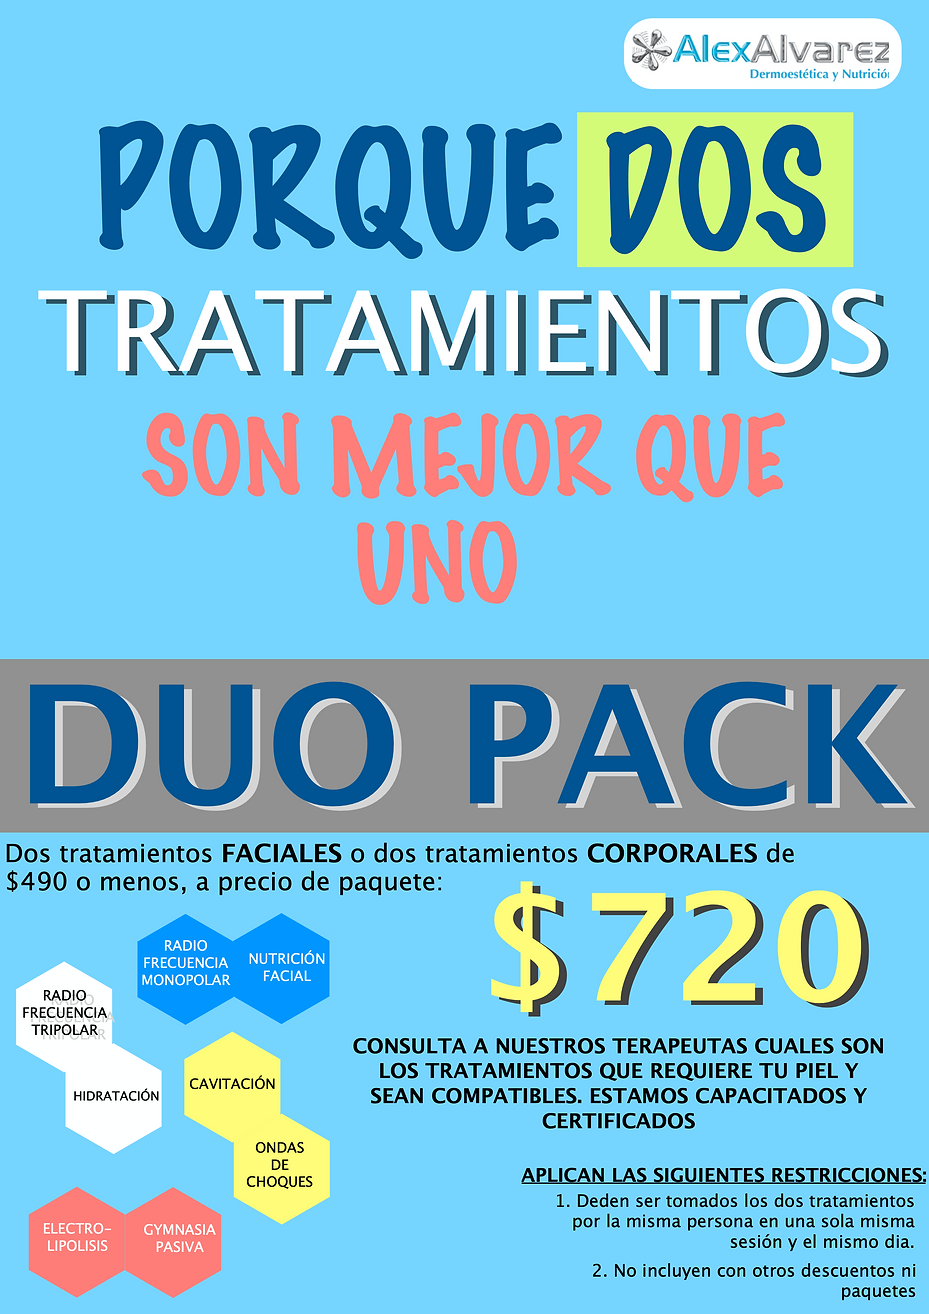 DUO PACK JUNIO 19.png